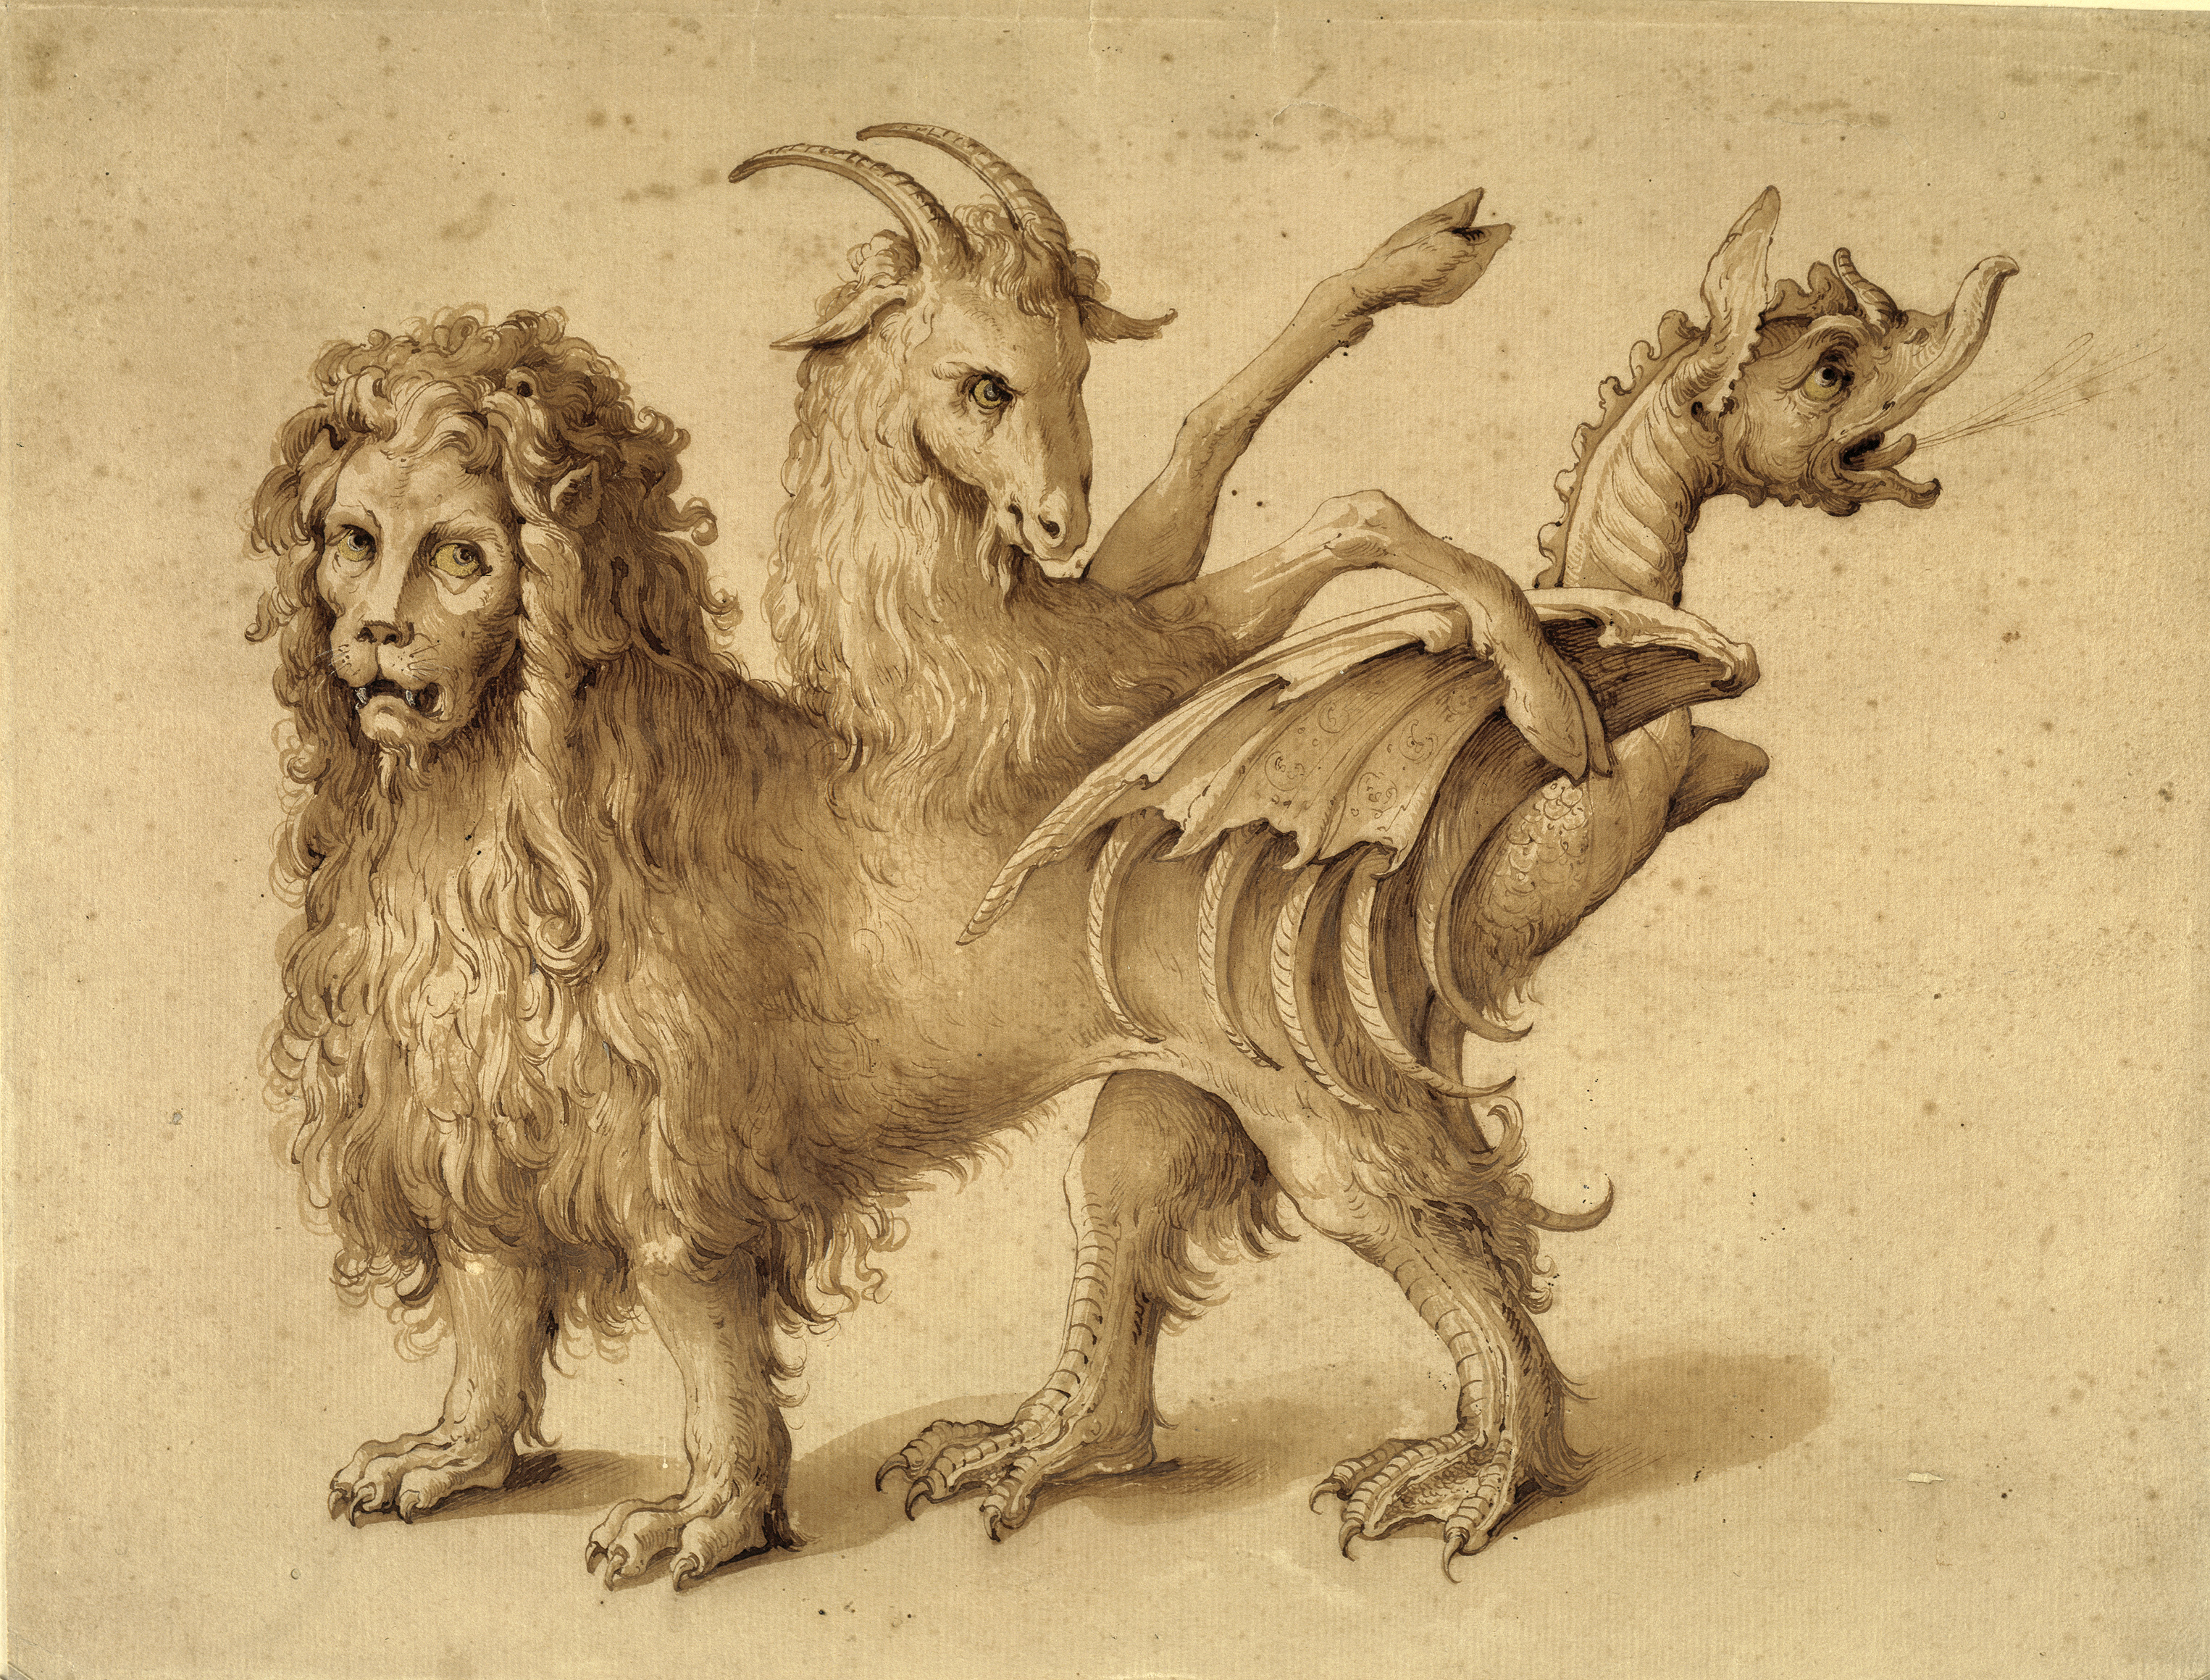 An image of the Chimera. This mythical beast had the body of a lion, and a tail with a serpent's head. It also had a goat's head attached to its back.